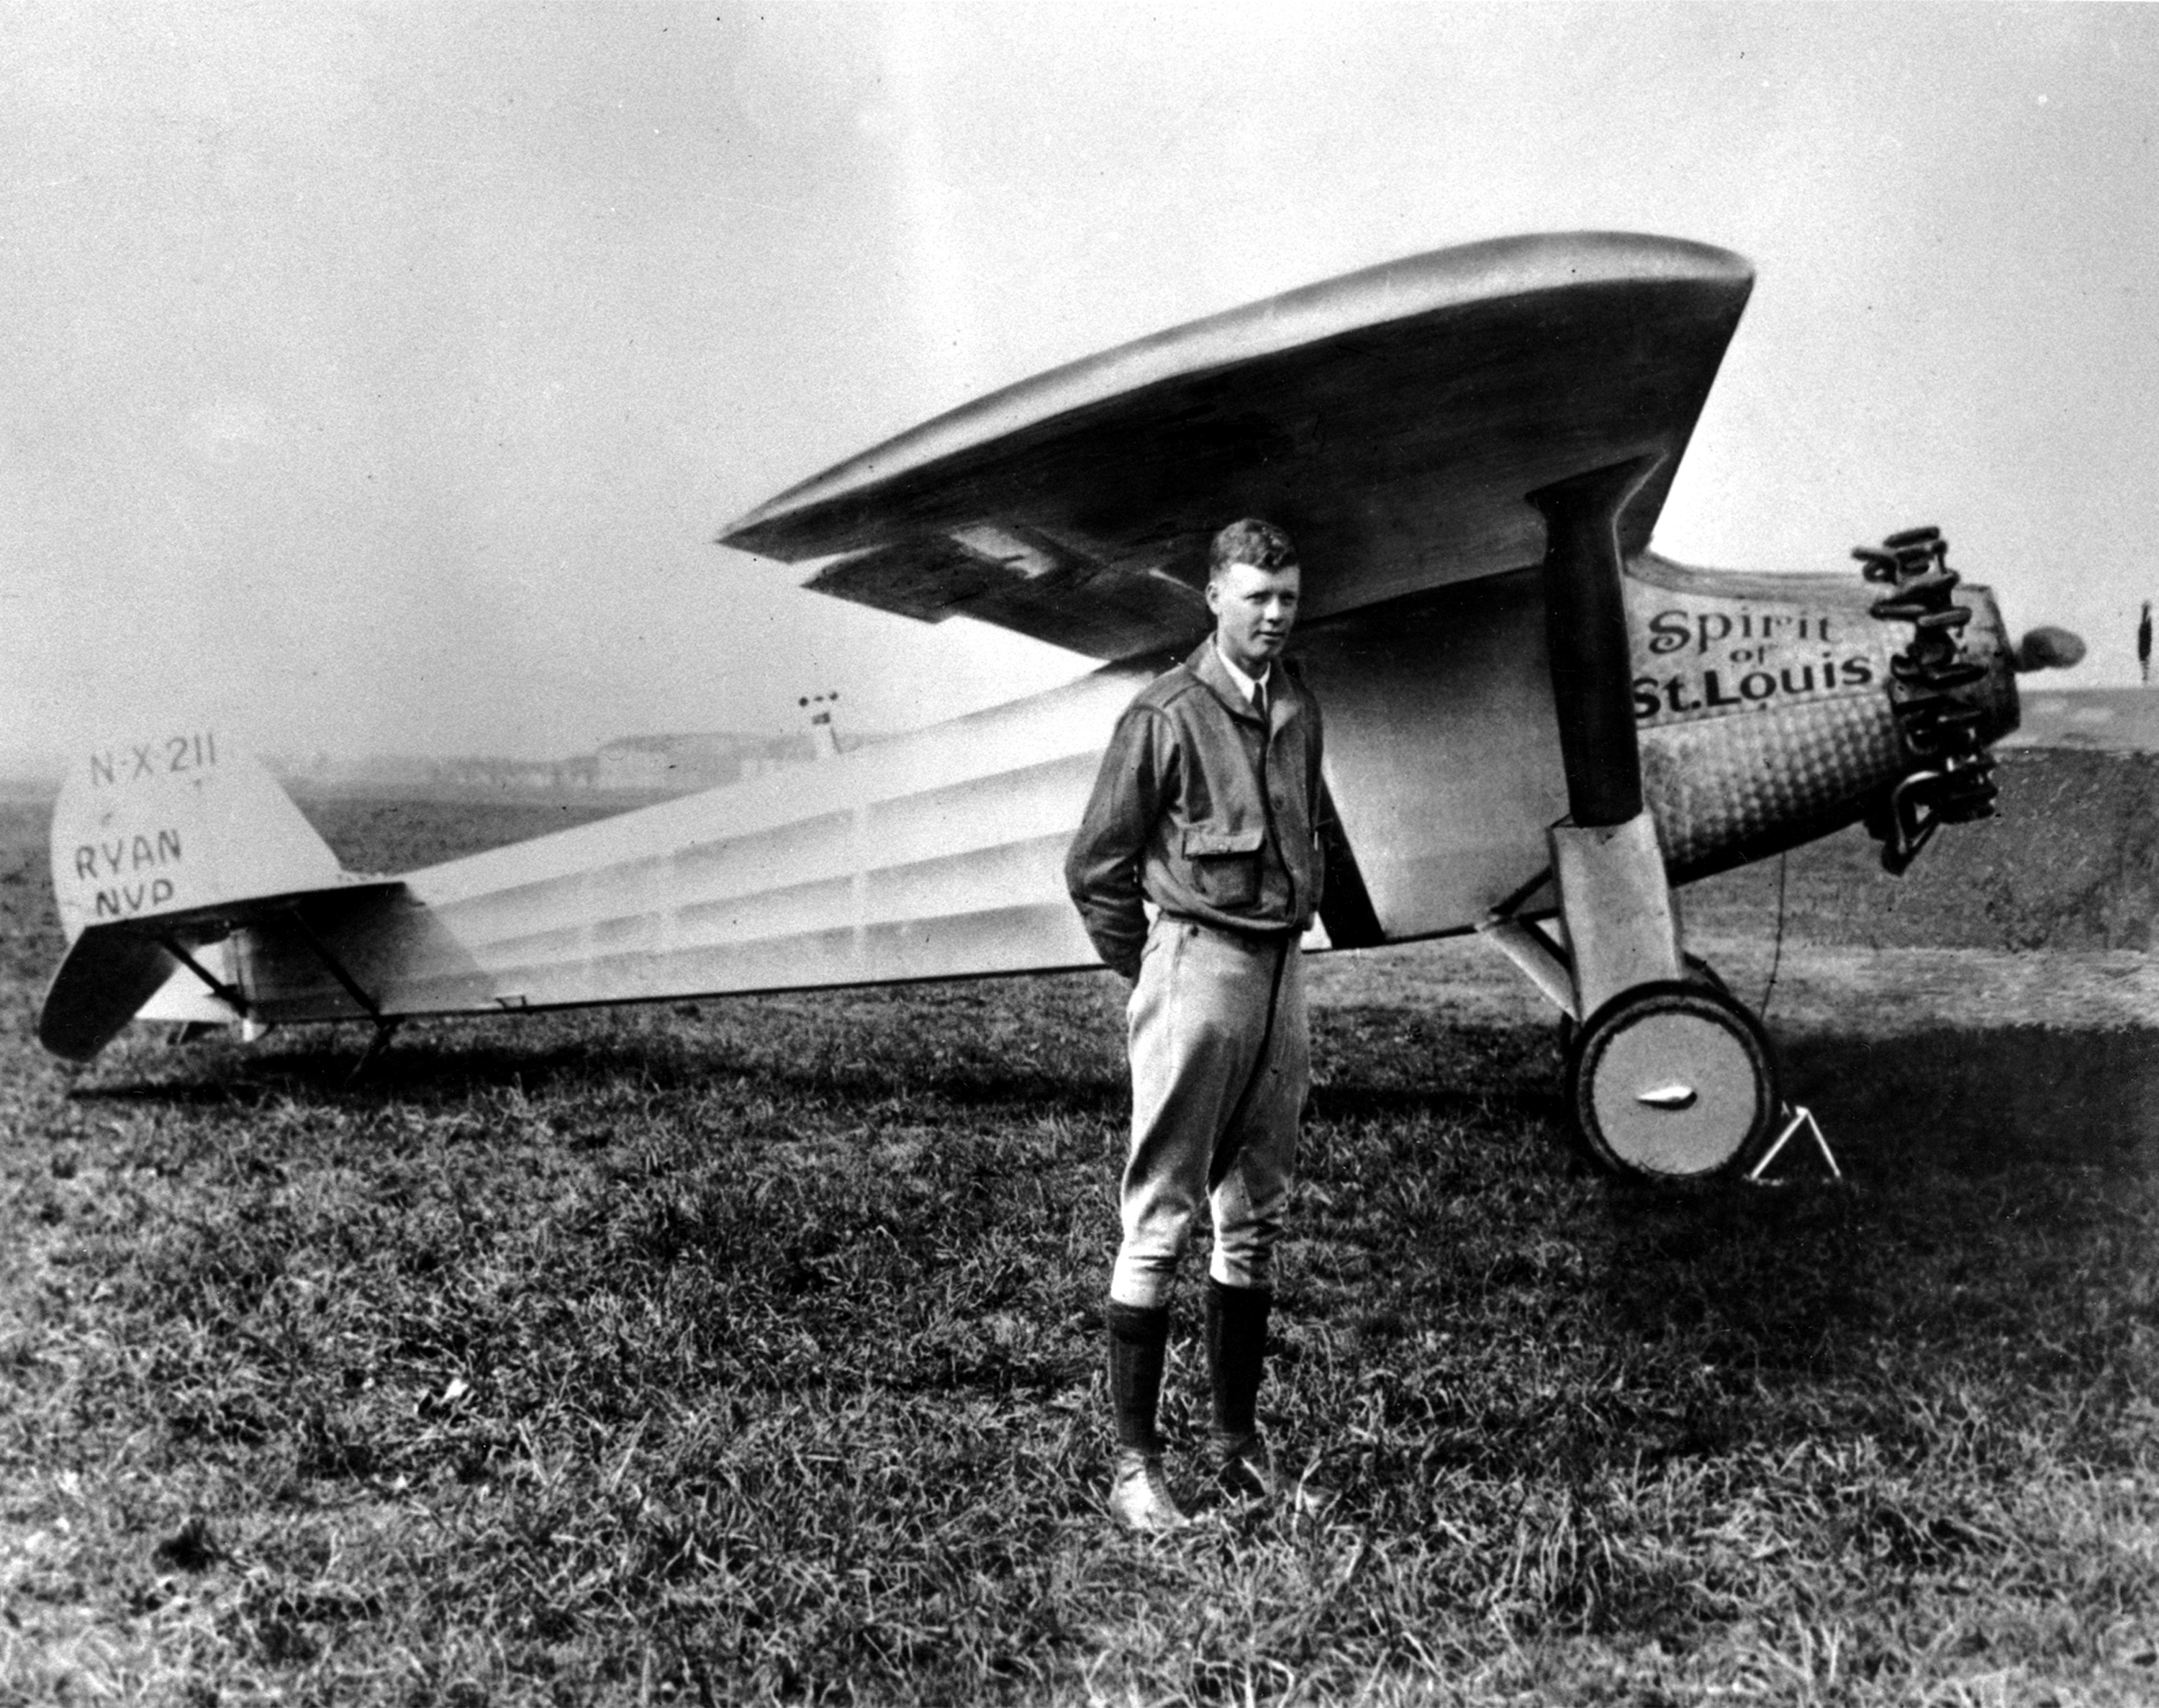 Charles Lindbergh and the Spirit of St. Louis, May 1927.